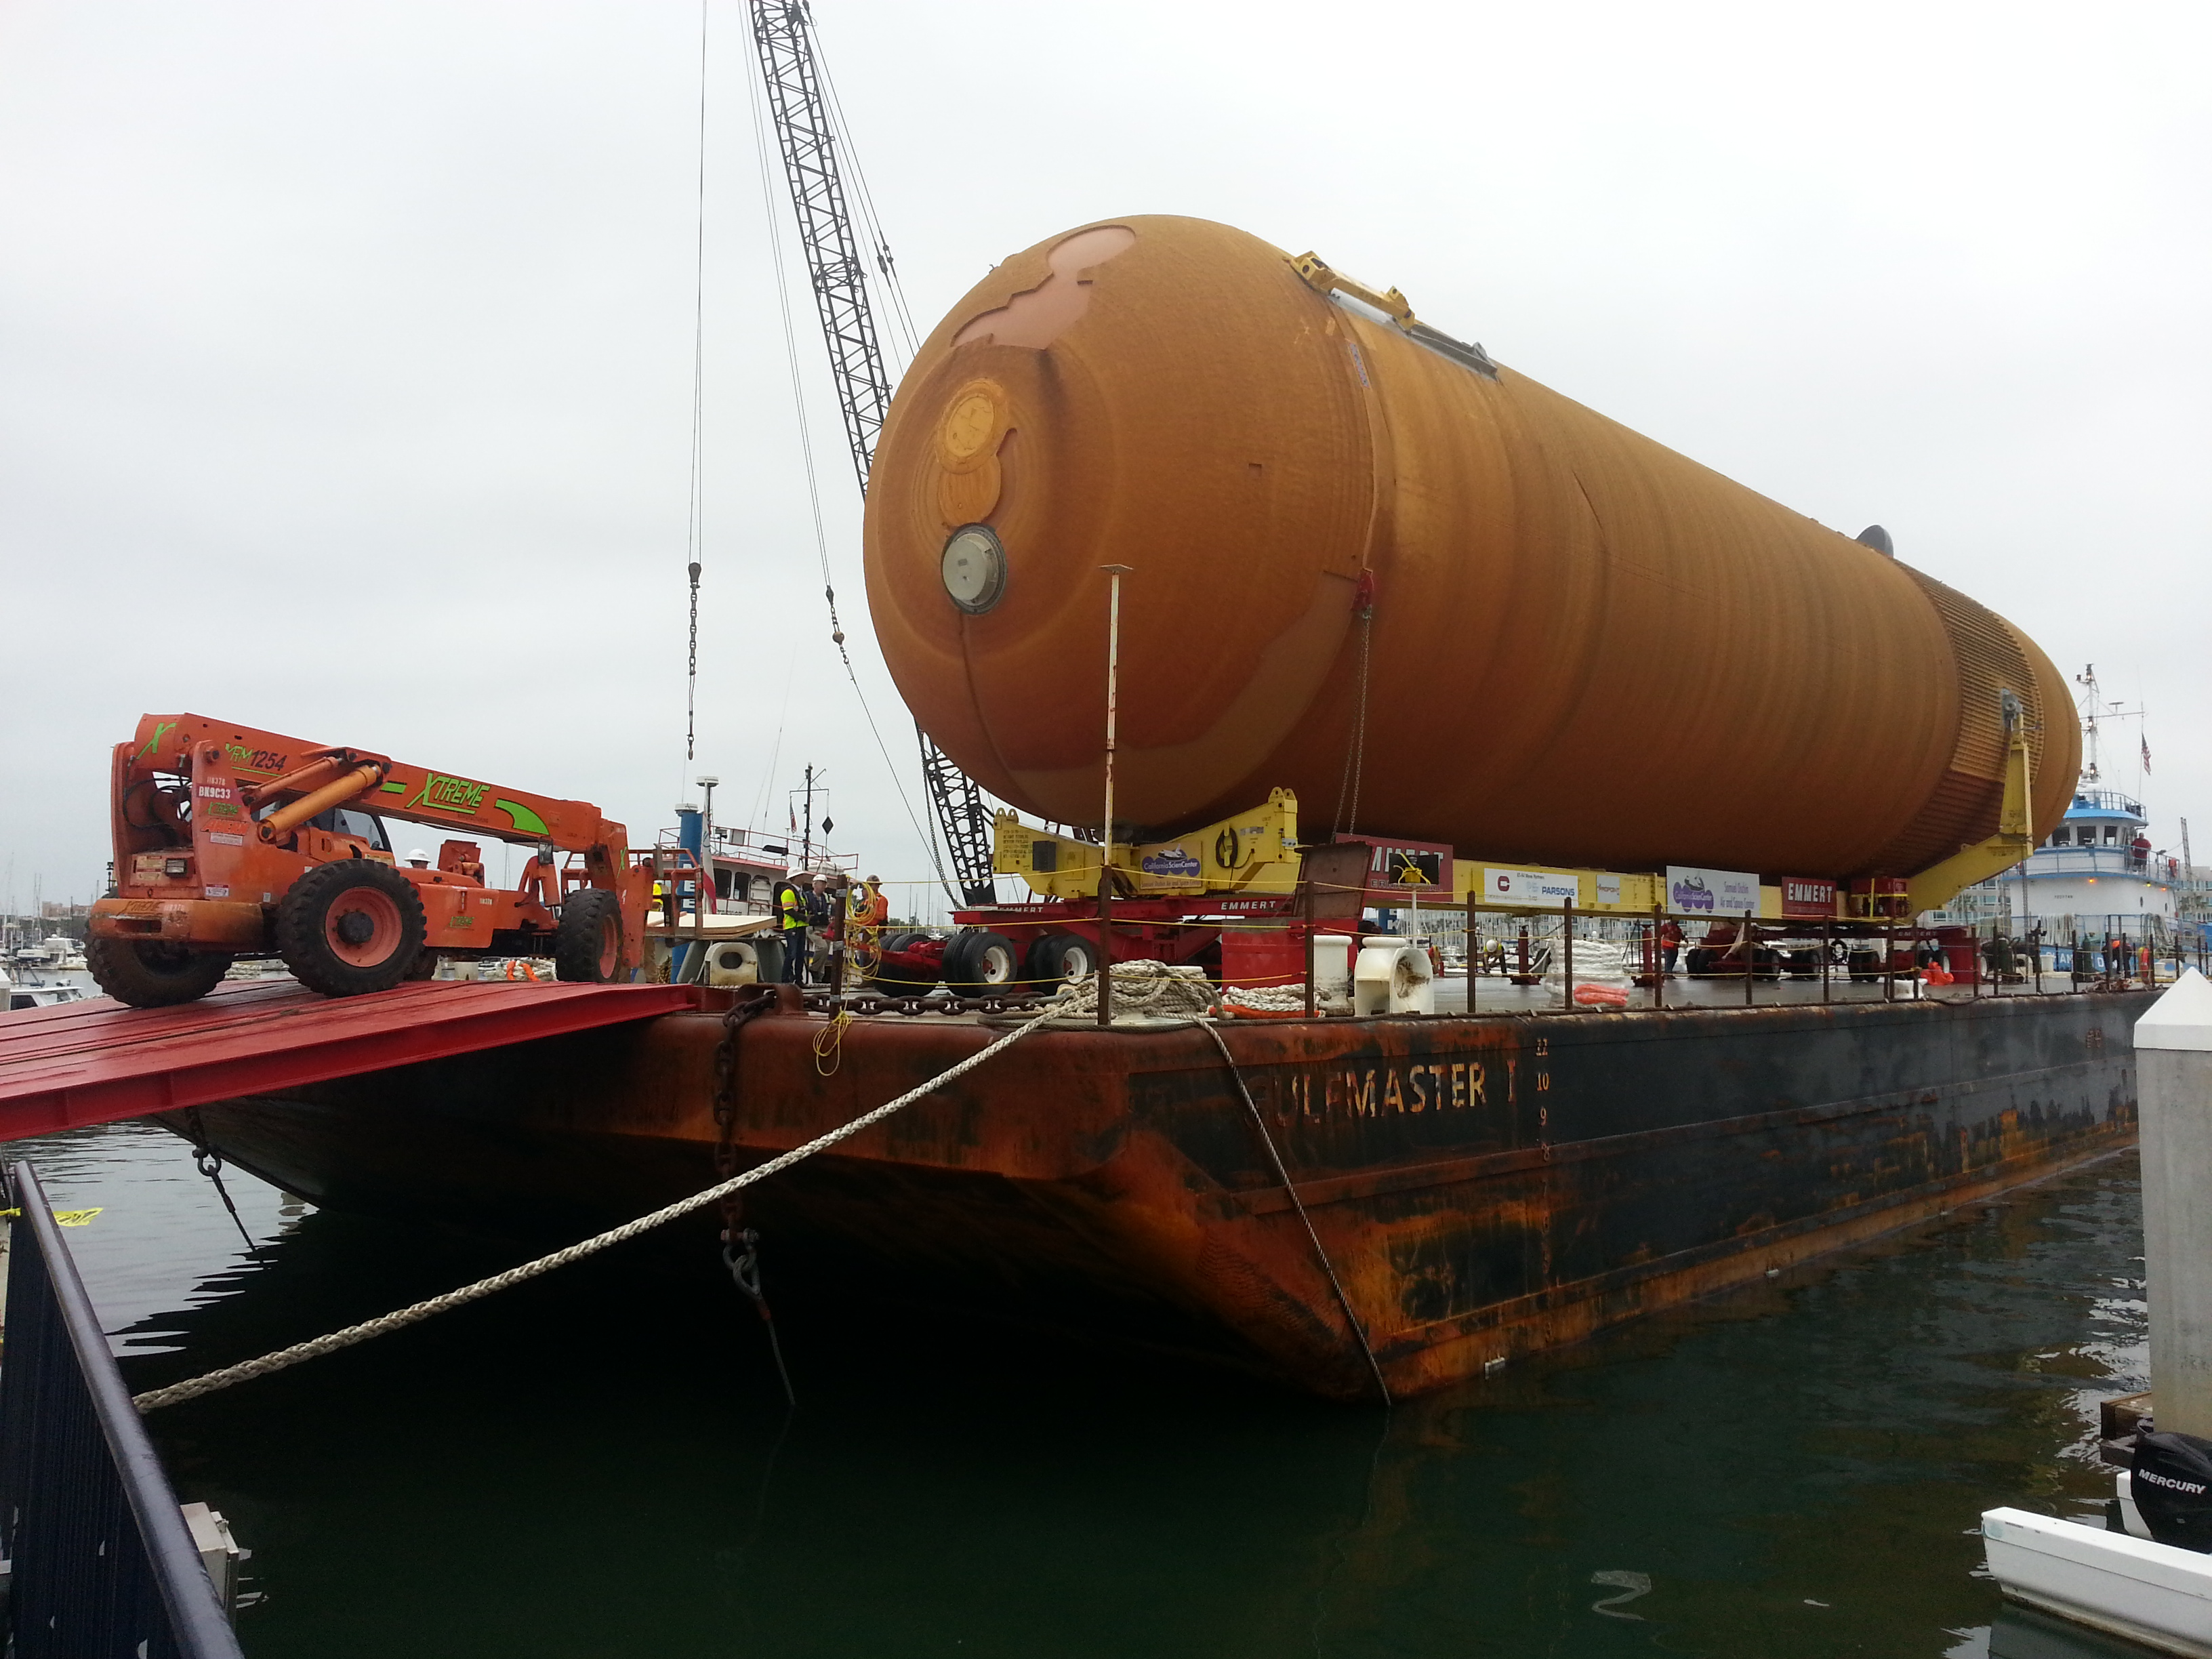 Space Shuttle Spectacle: Watching a Huge Fuel Tank Come Ashore